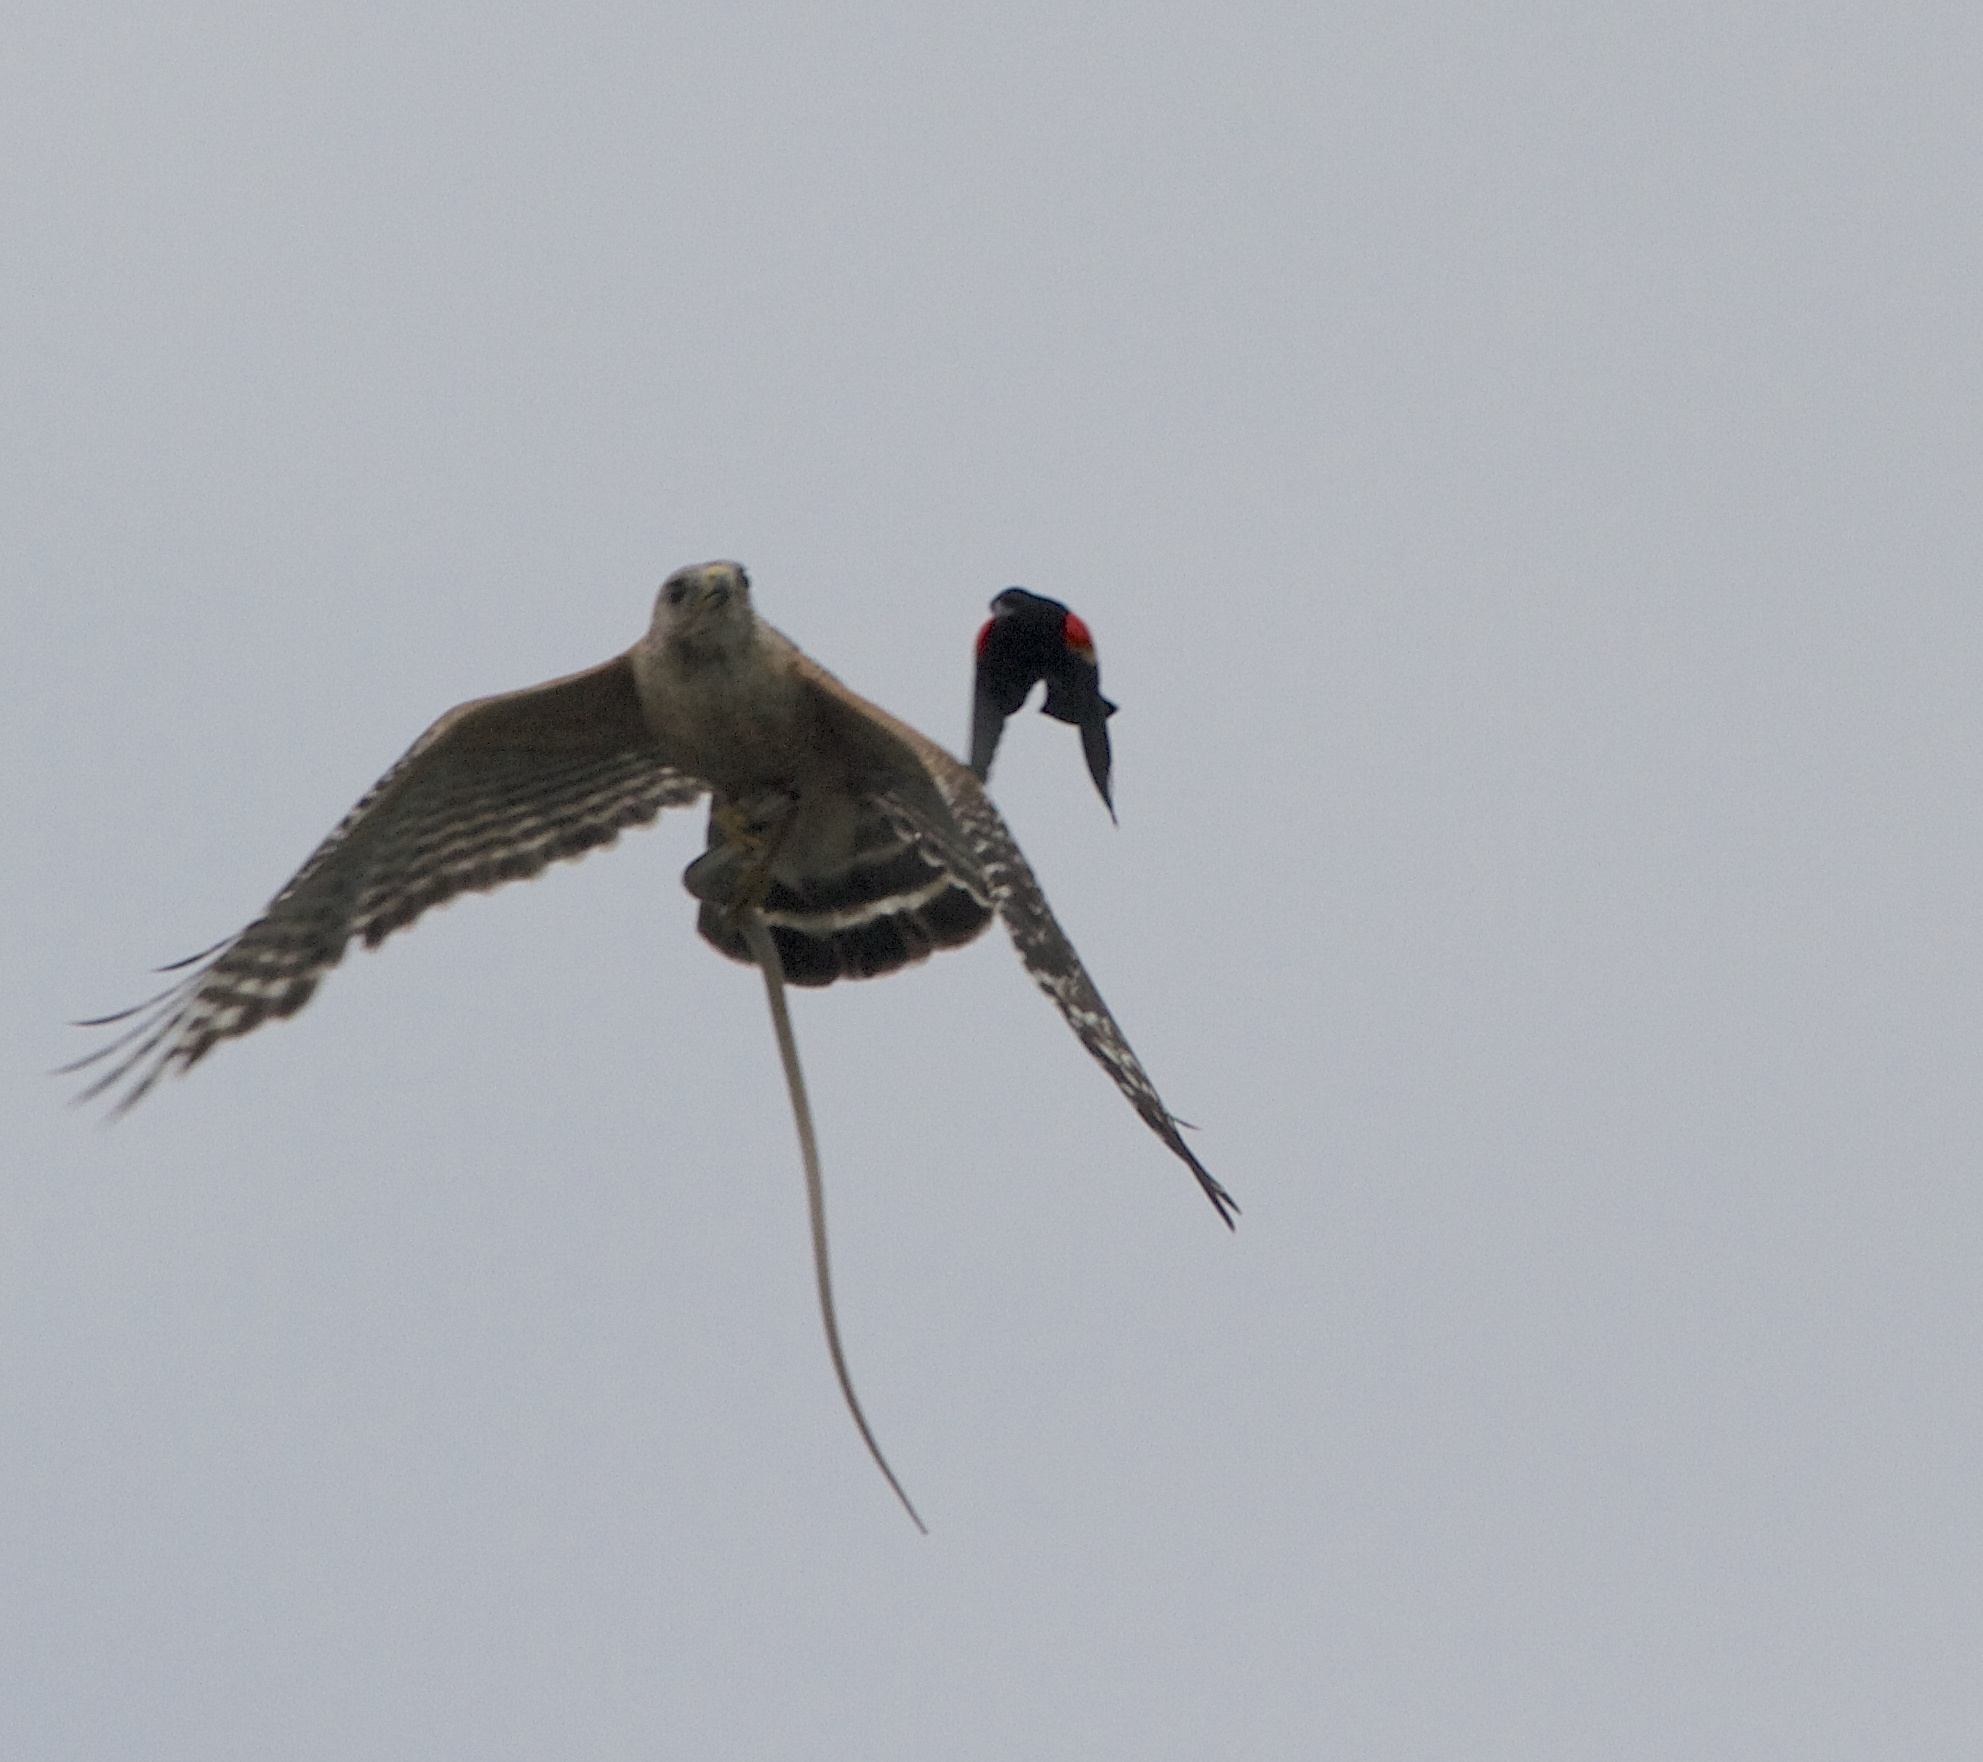 A brave Red-winged Blackbird flies escort above the Hawk.